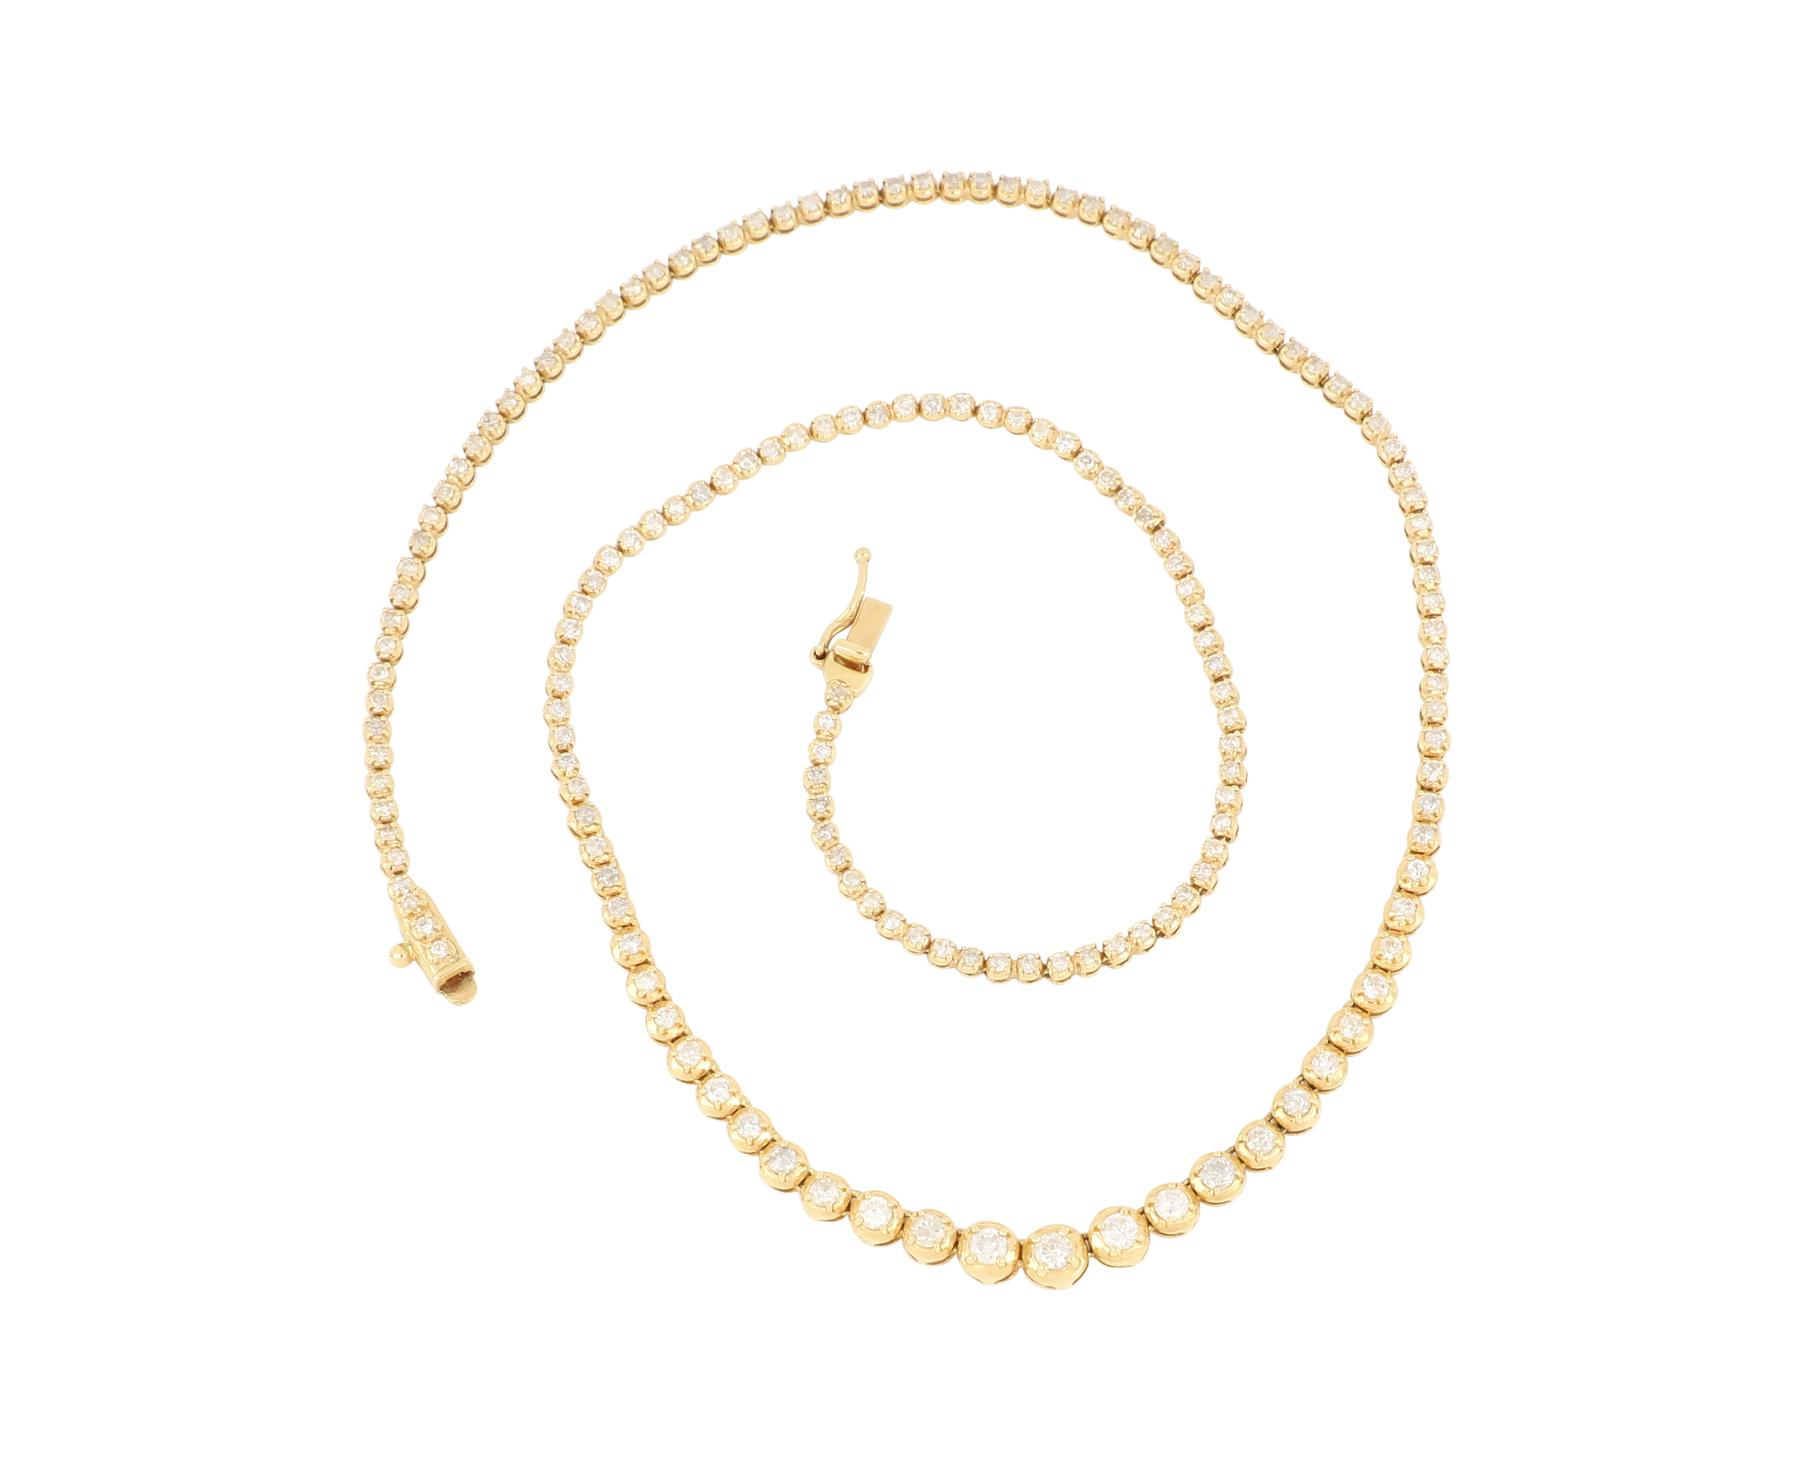 18ct gold tennis type necklace with 3.00 cts diamonds, Valuation $11,387.00